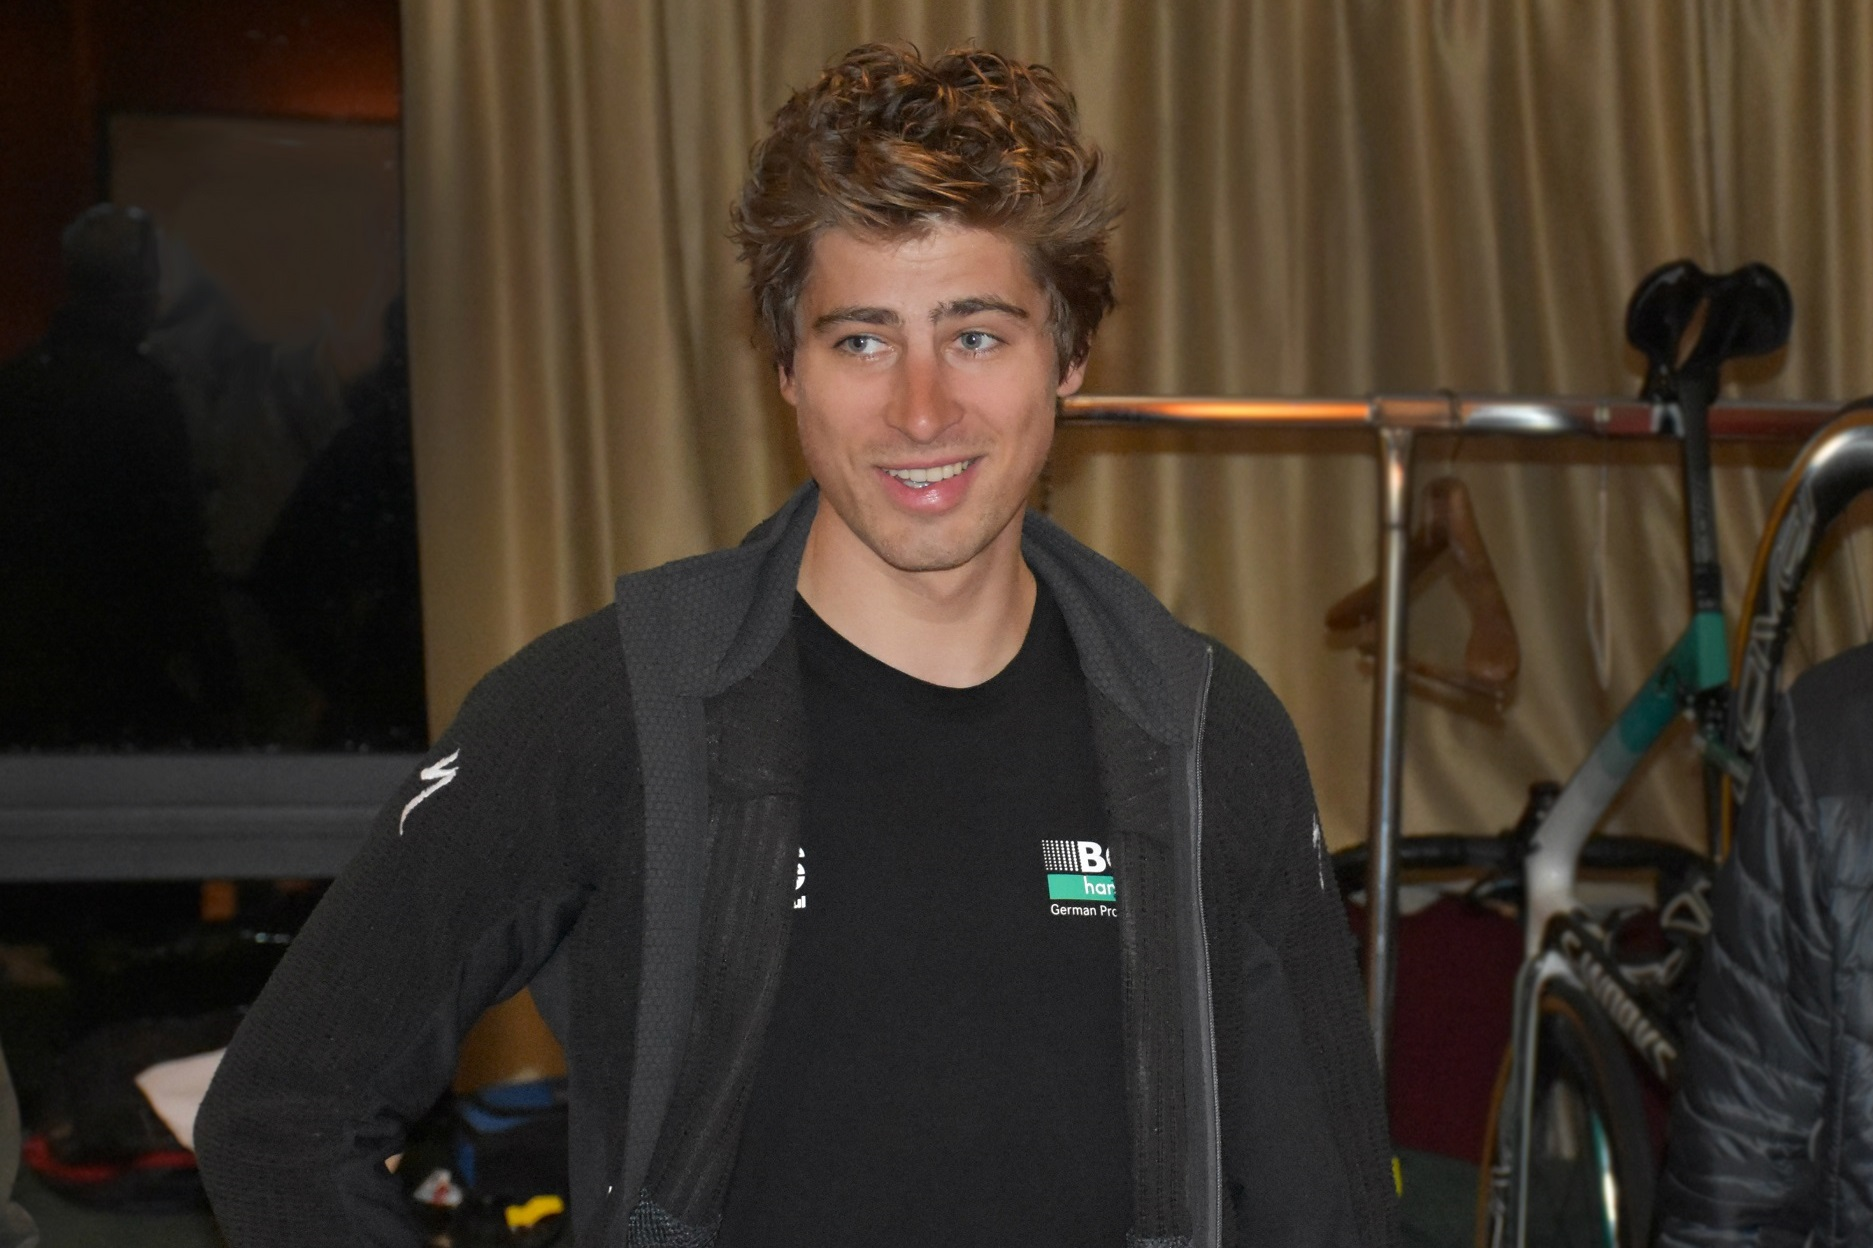 Peter sagan the evening before the strade bianche 2018